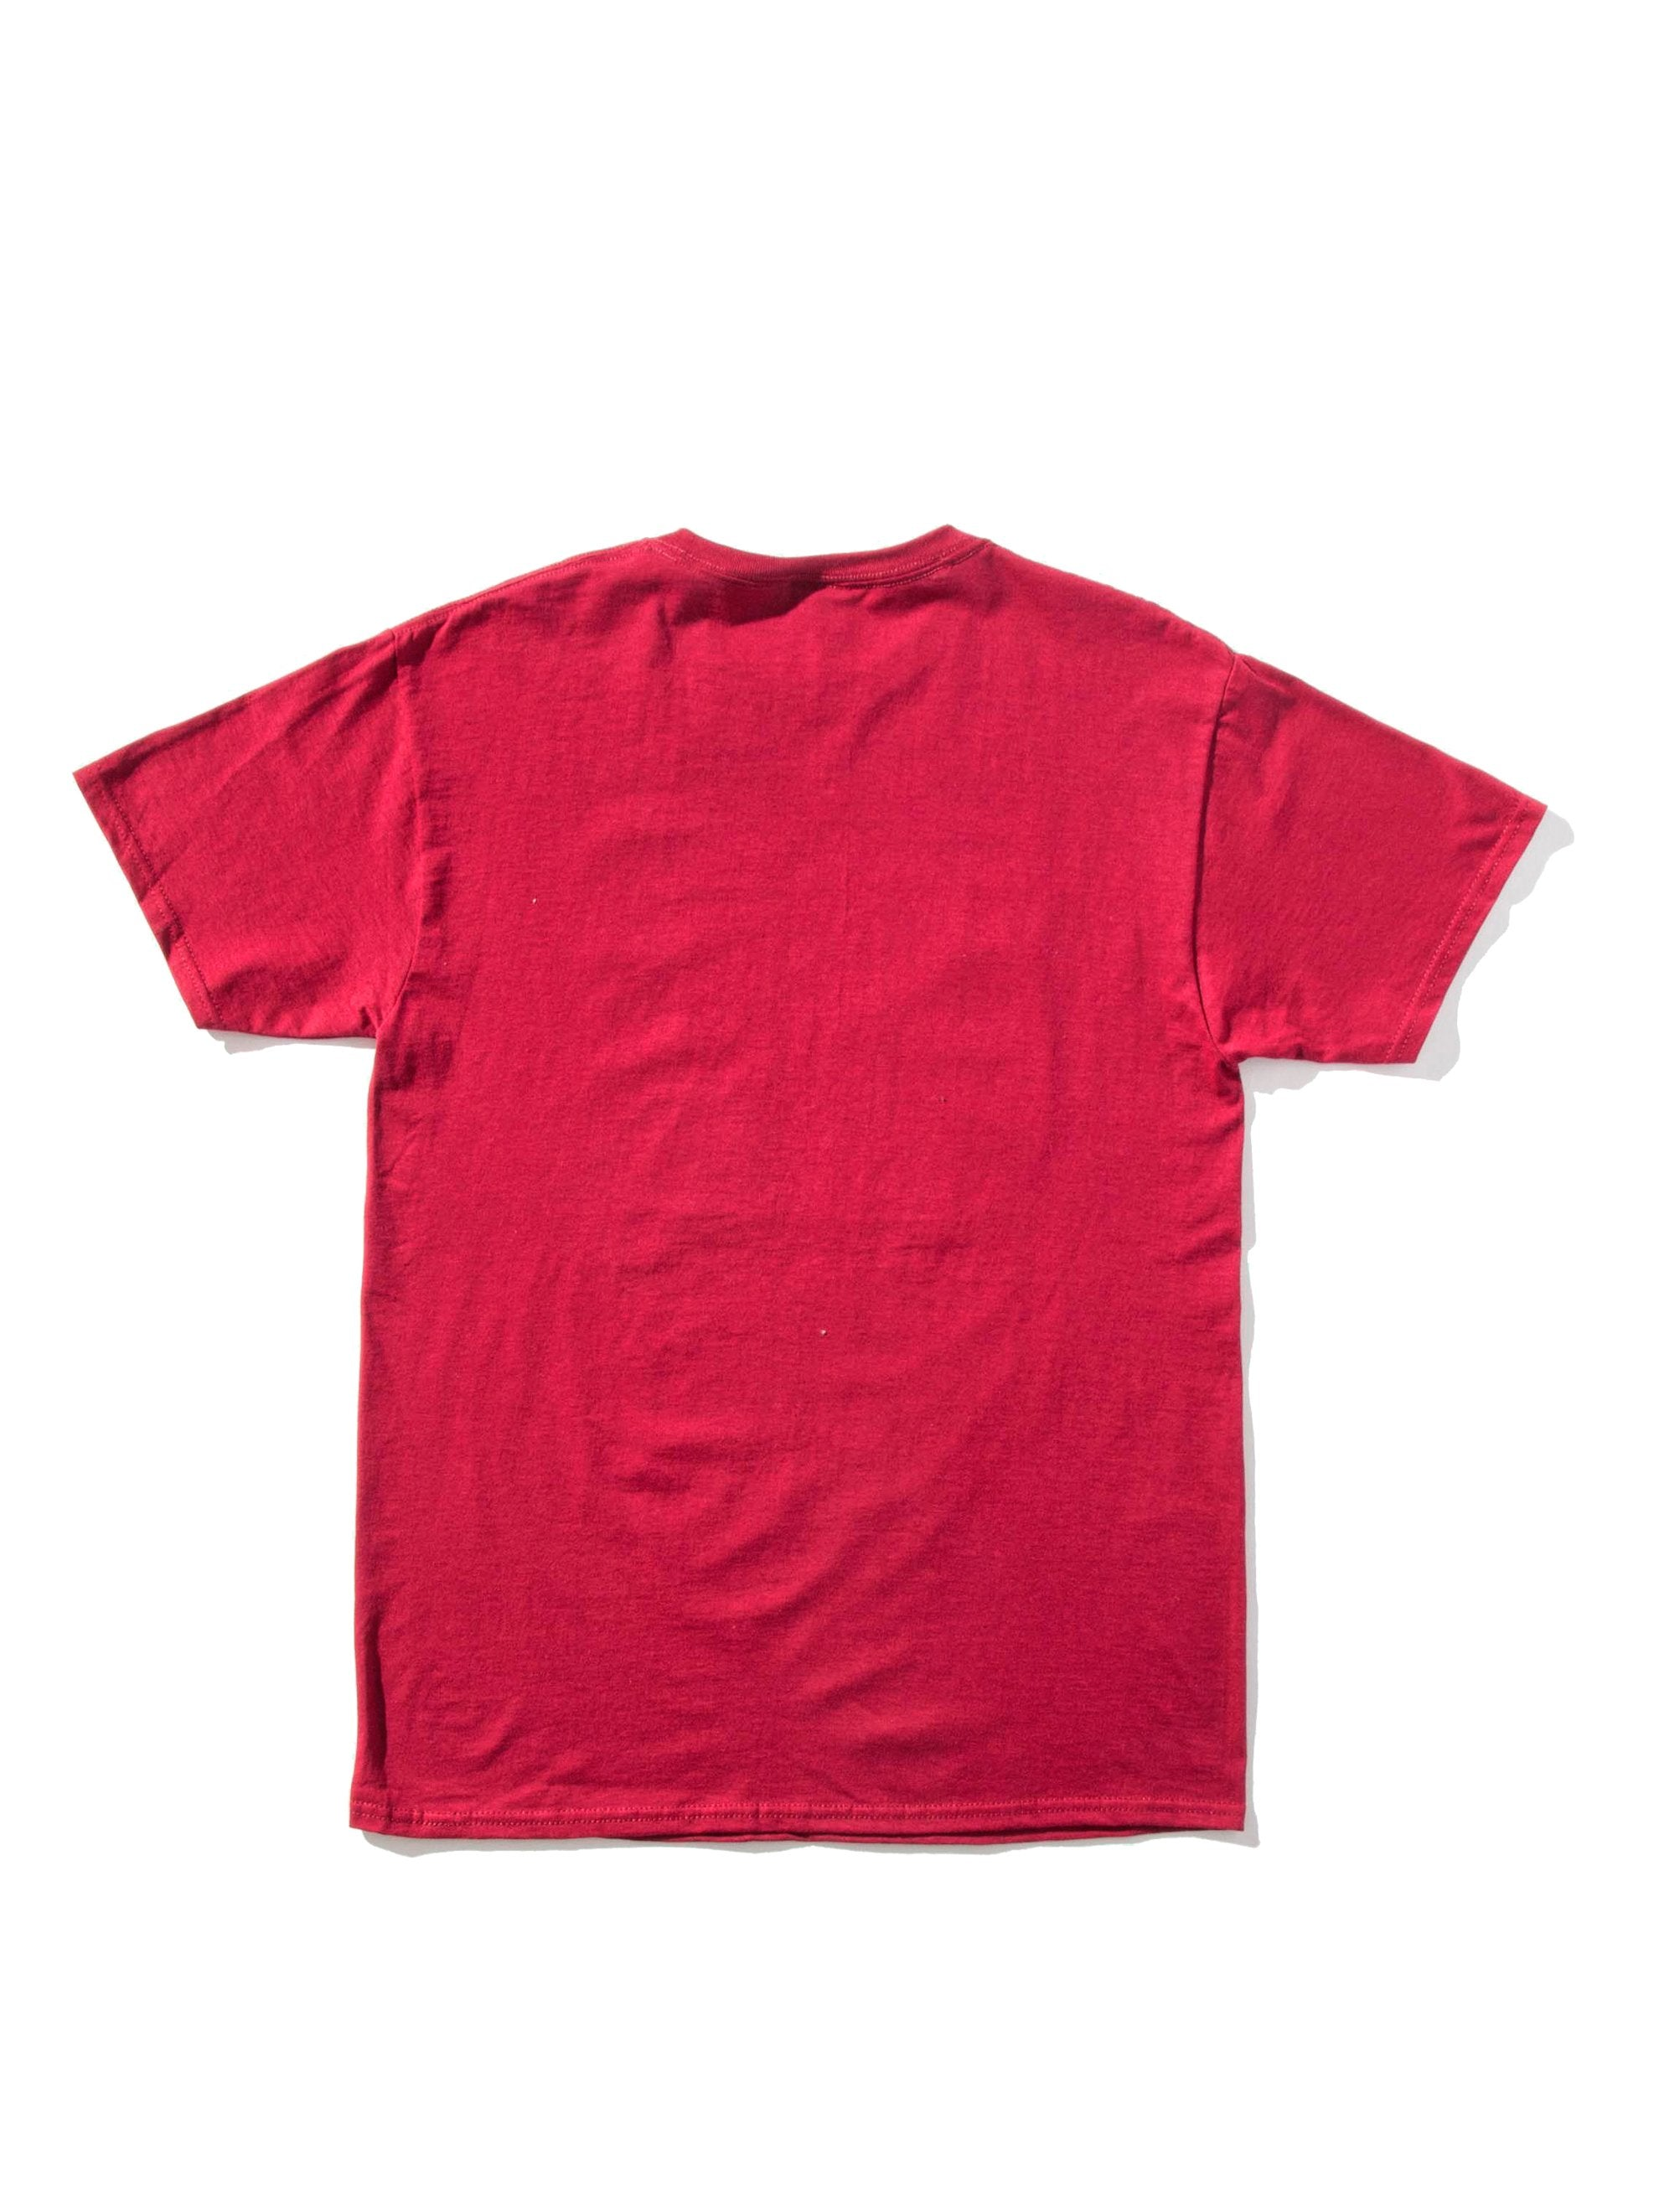 Burgundy Three Magi T-Shirt 7